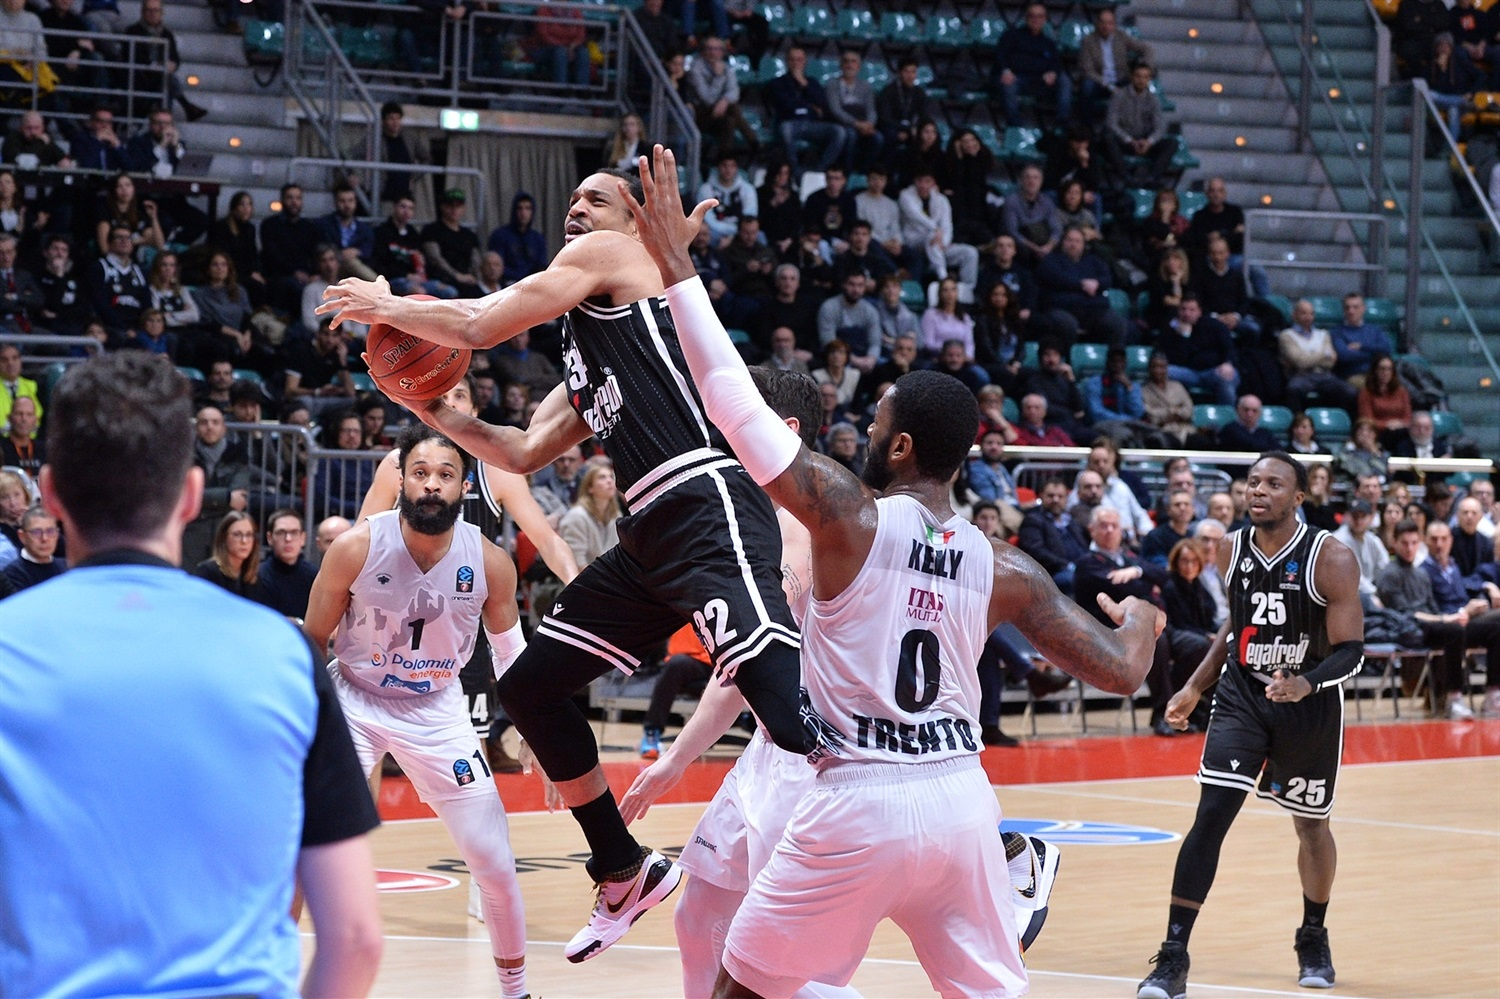 Vince Hunter - Segafredo Virtus Bologna (photo Virtus) - EC19